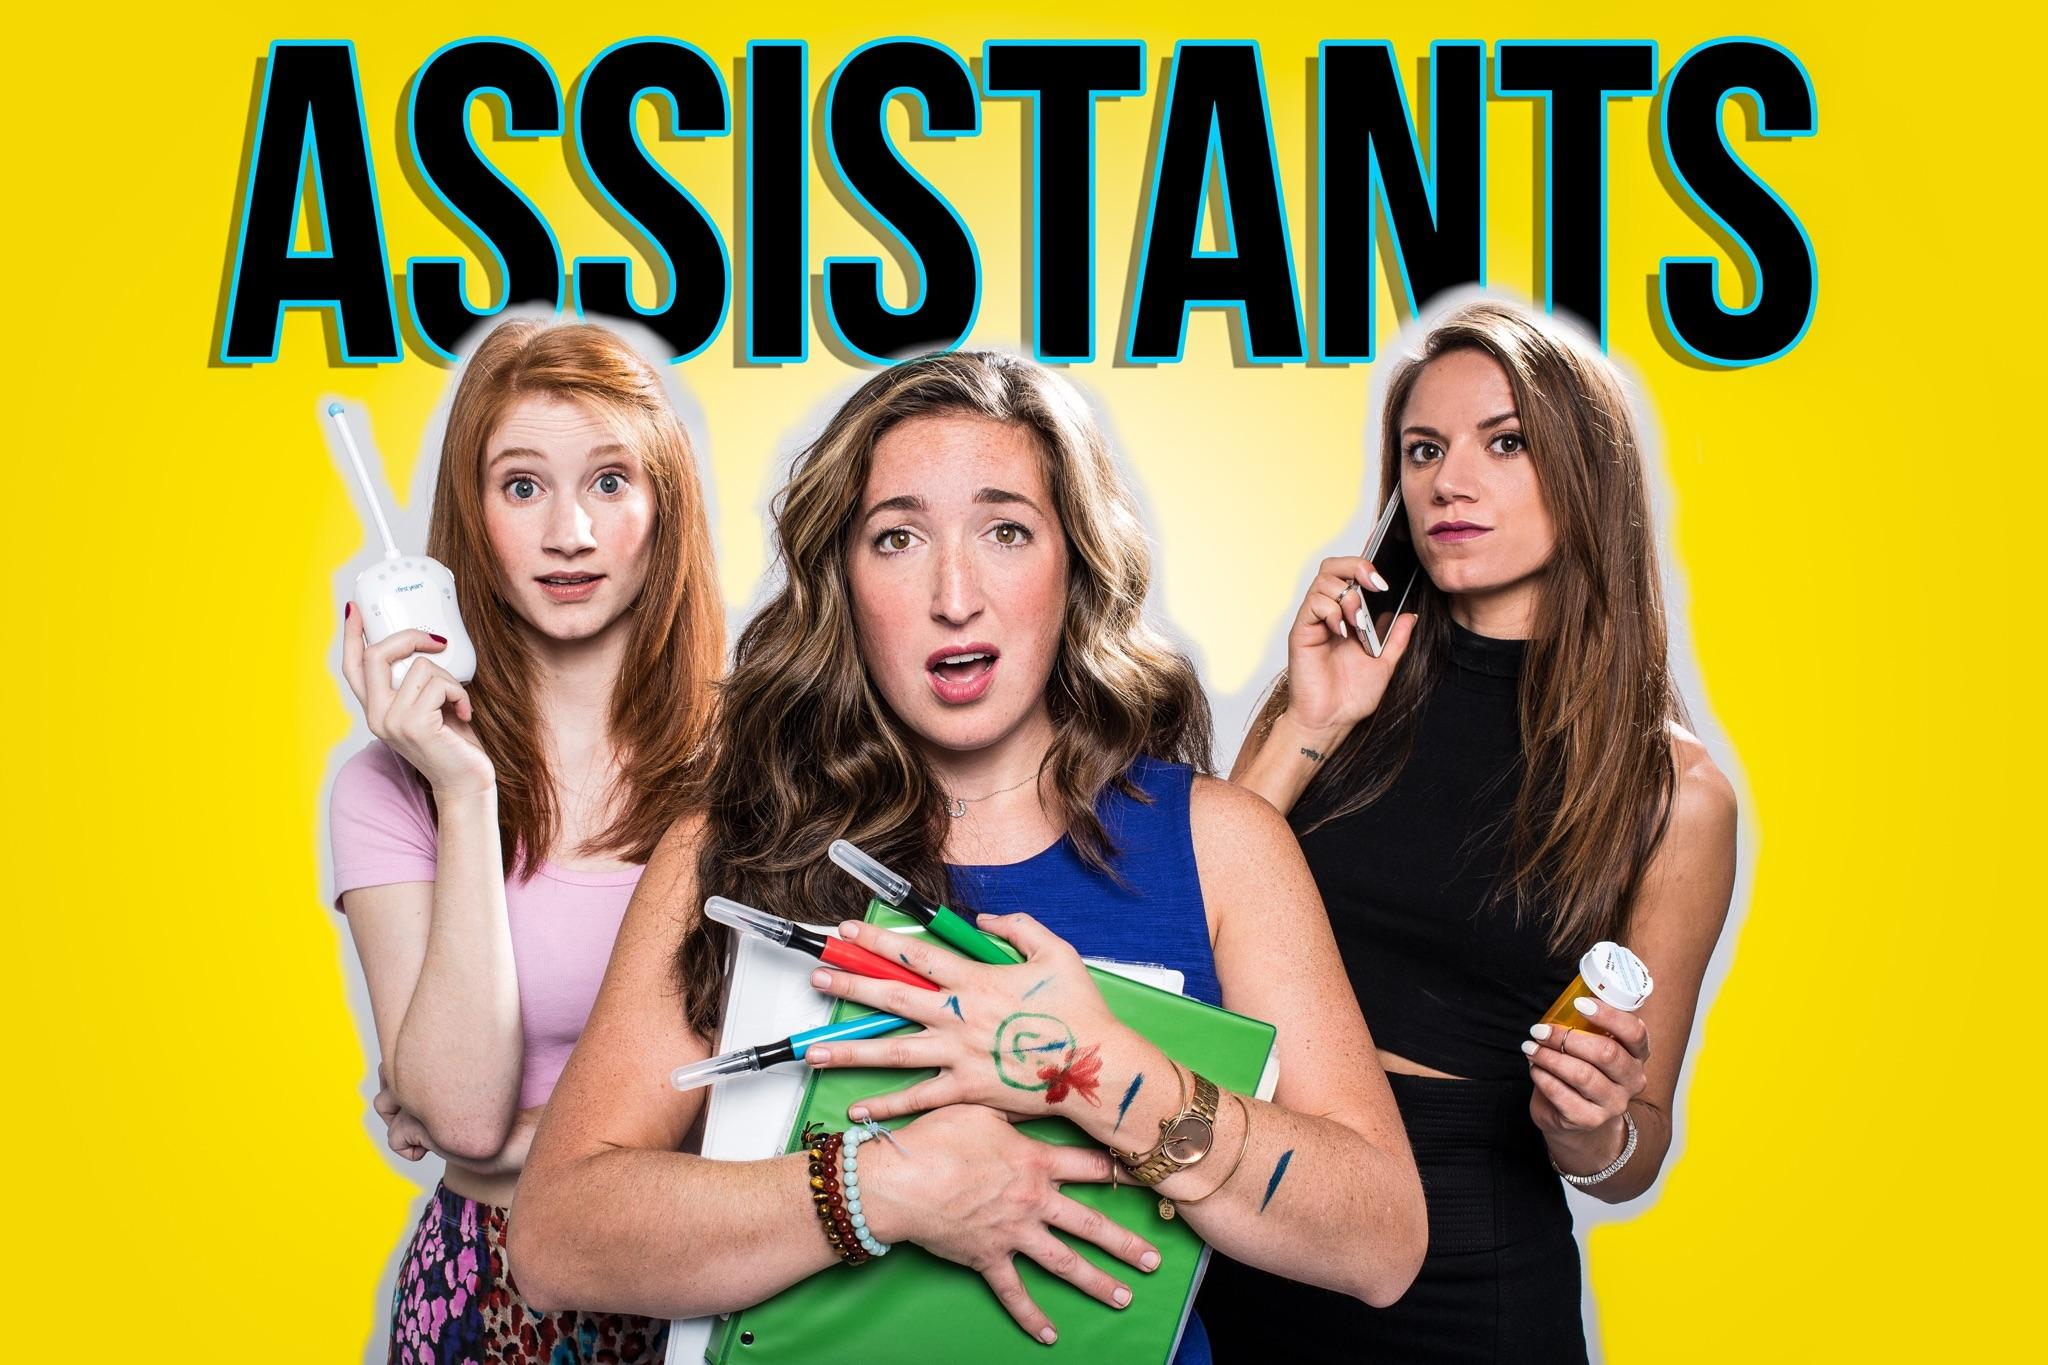 Assistants poster